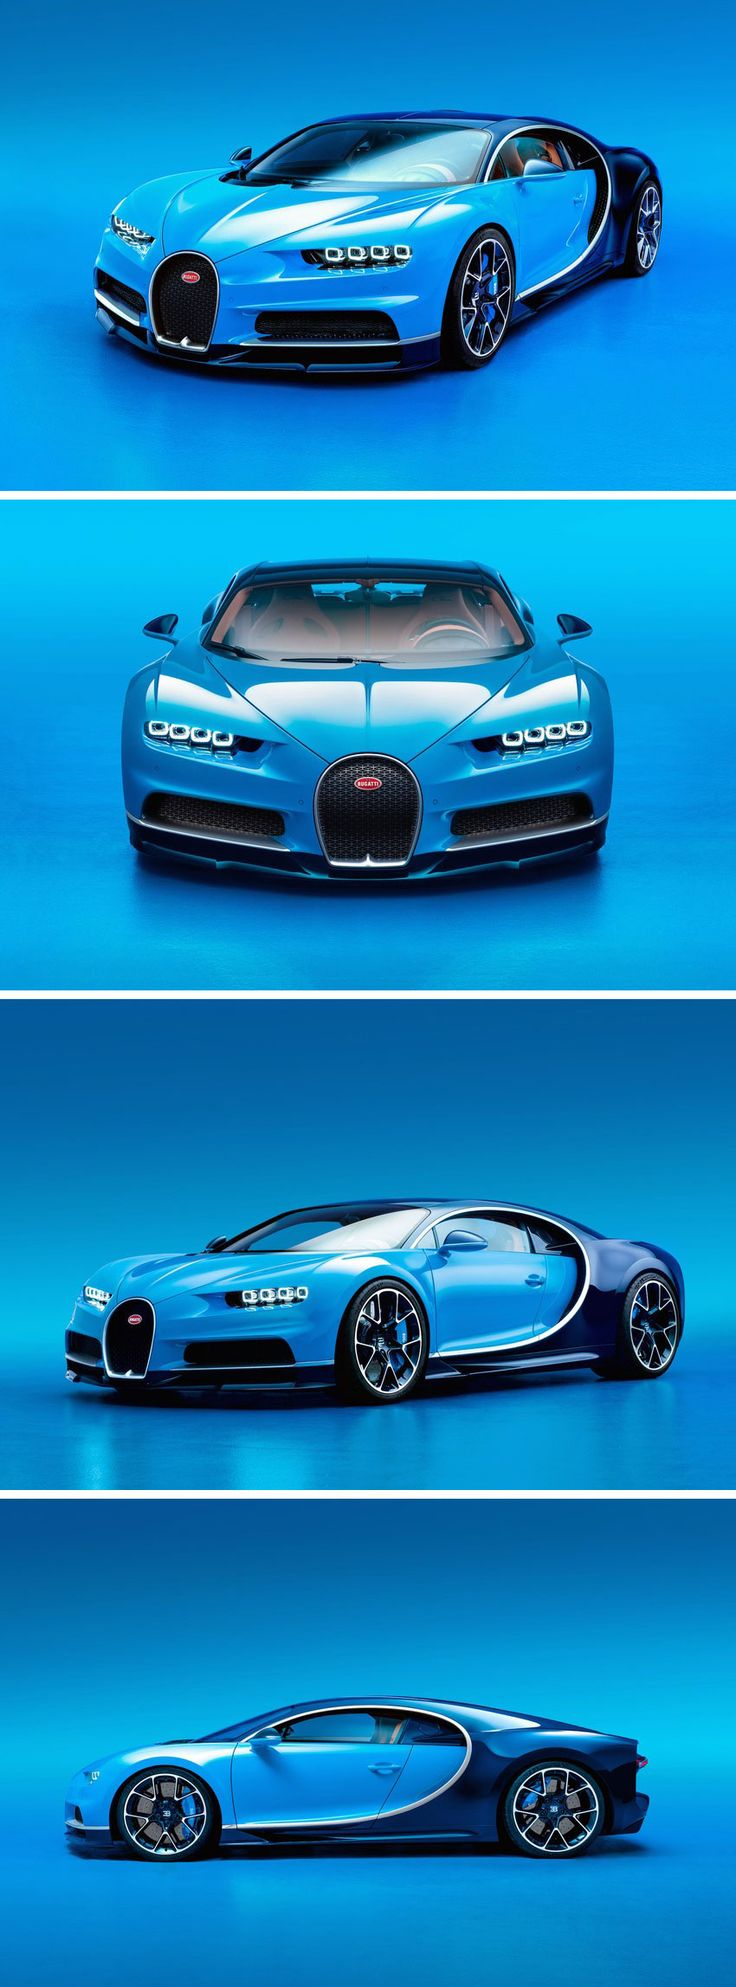 The Bugatti Chiron  #RePin by AT Social Media Marketing - Pinterest Marketing Specialists ATSocialMedia.co.uk